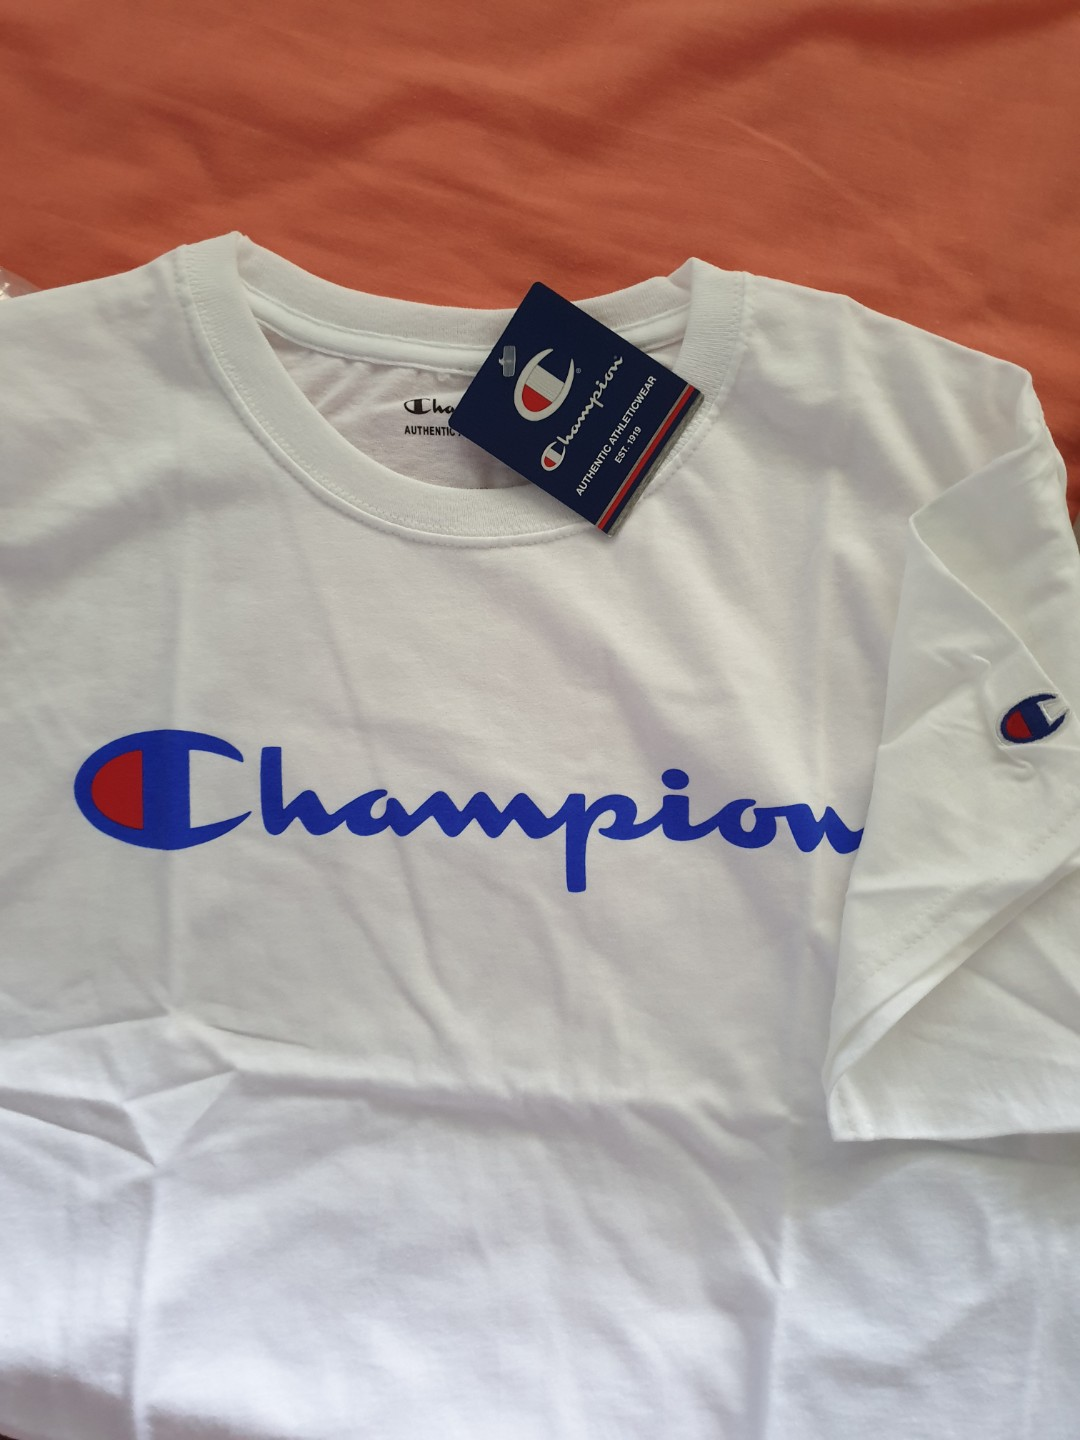 cd42d9b8ca23 New Authentic Champion Tee Navy blue and White avail, Men's Fashion ...